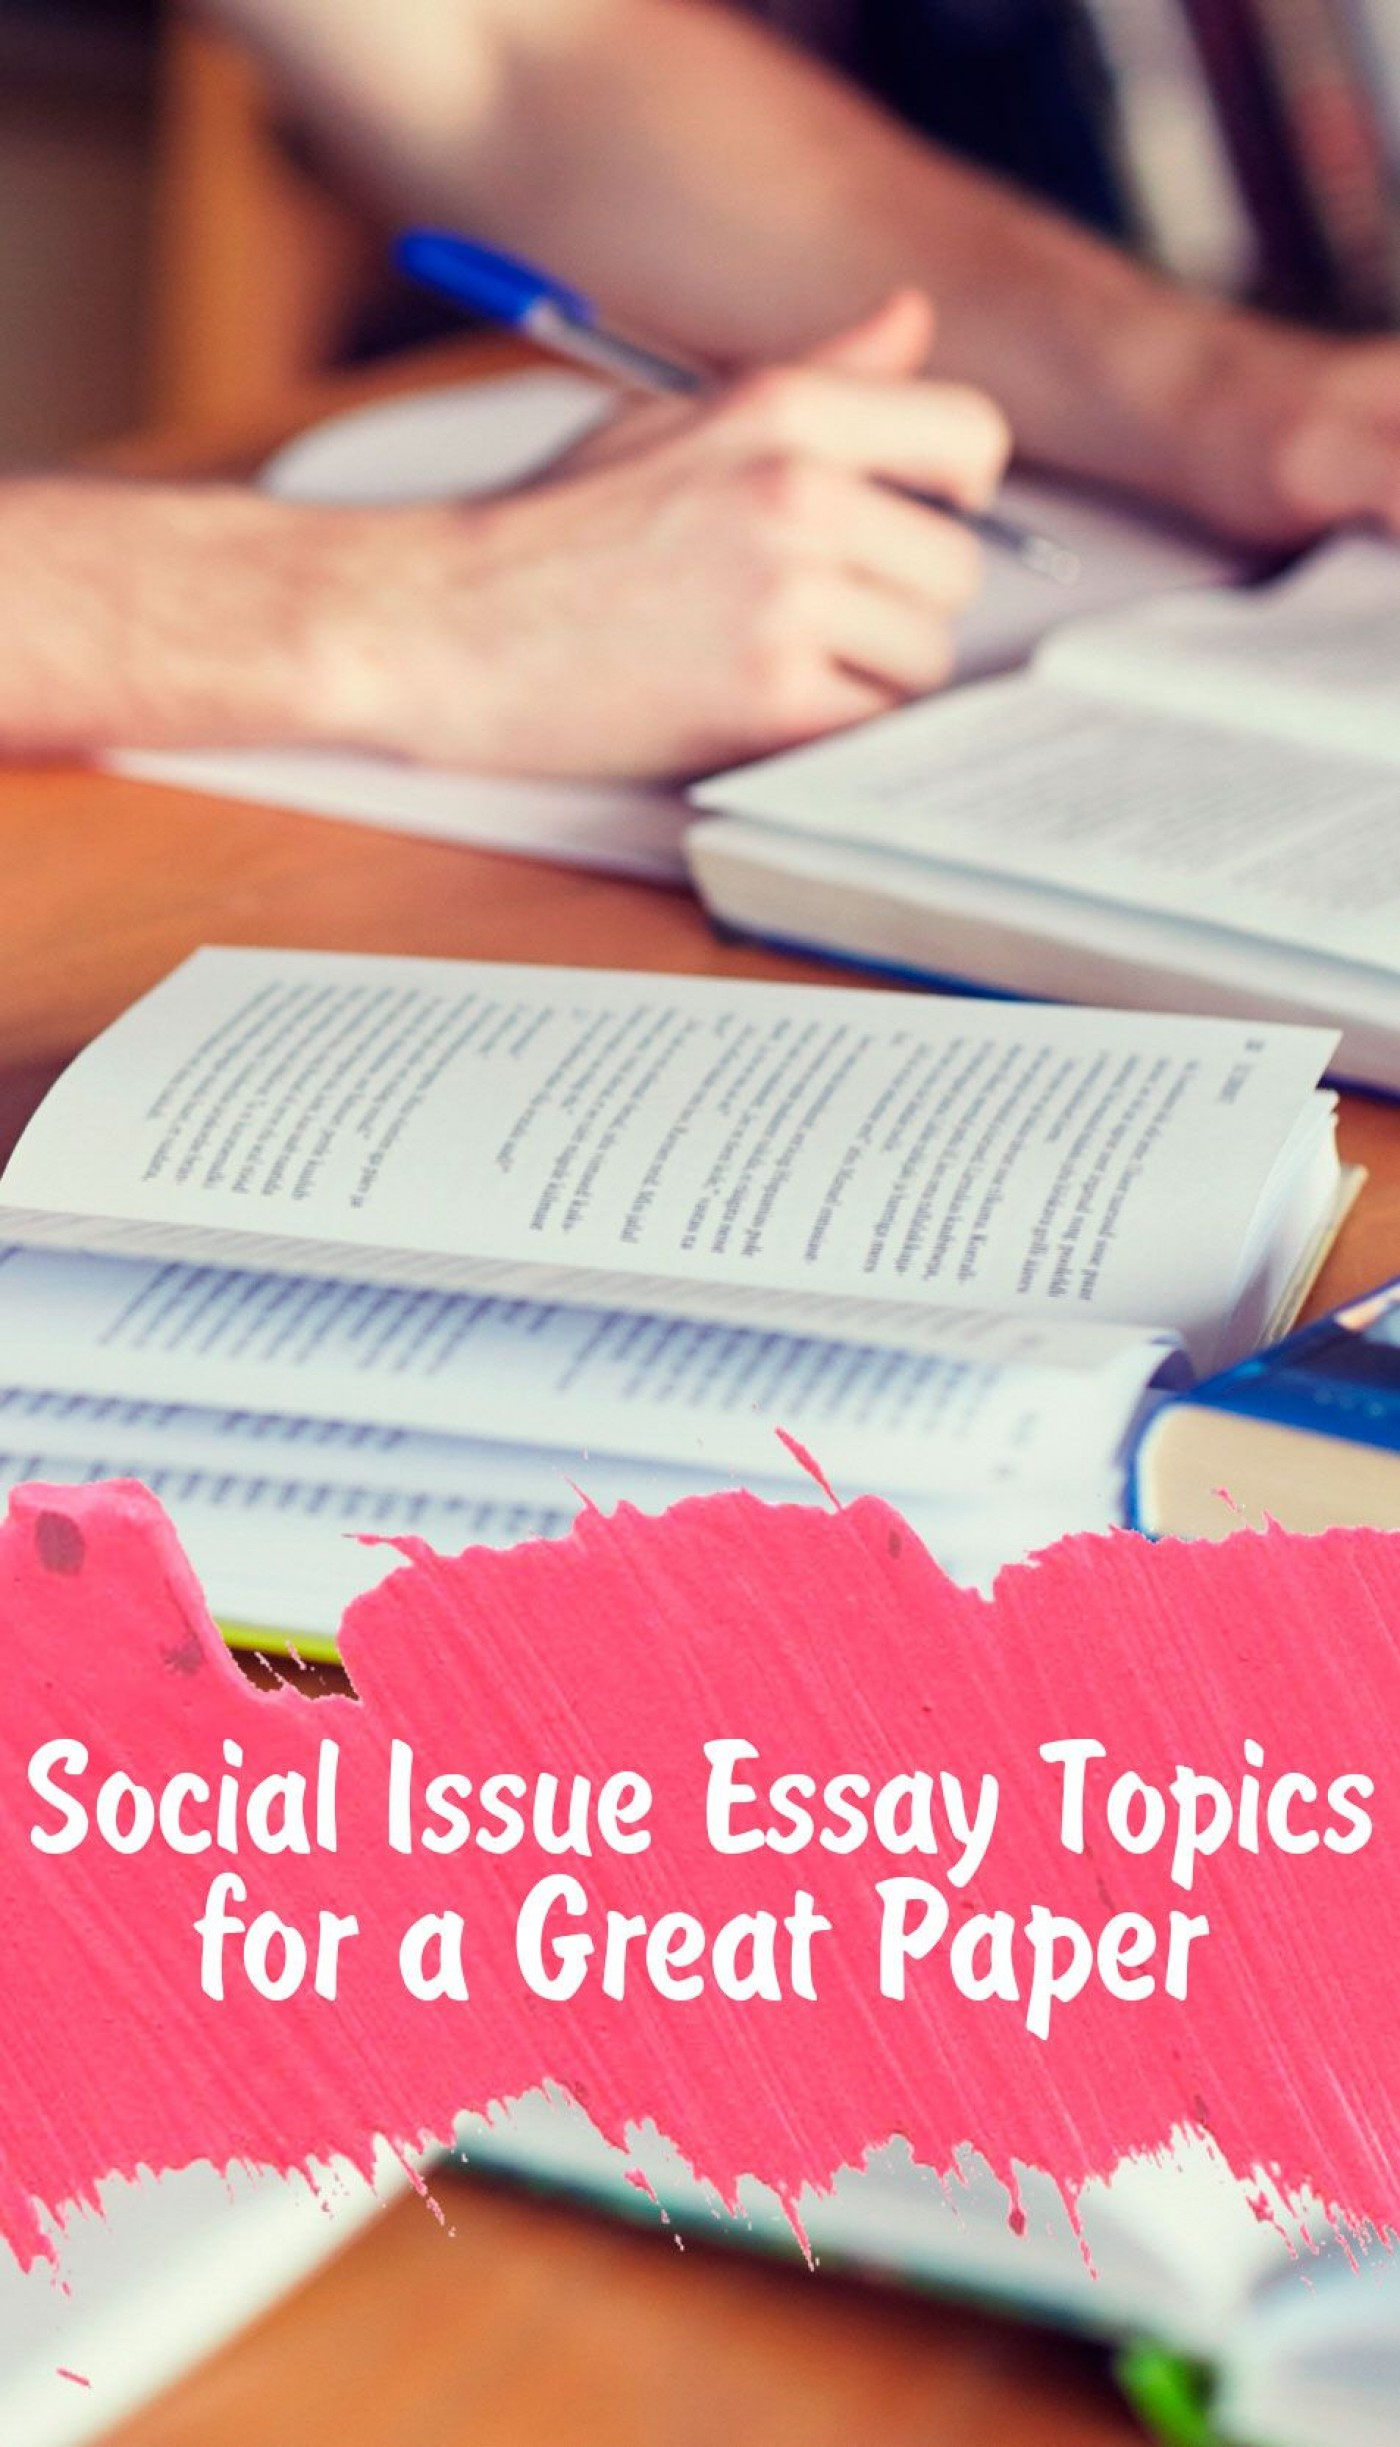 Social Problems Essay | Bartleby